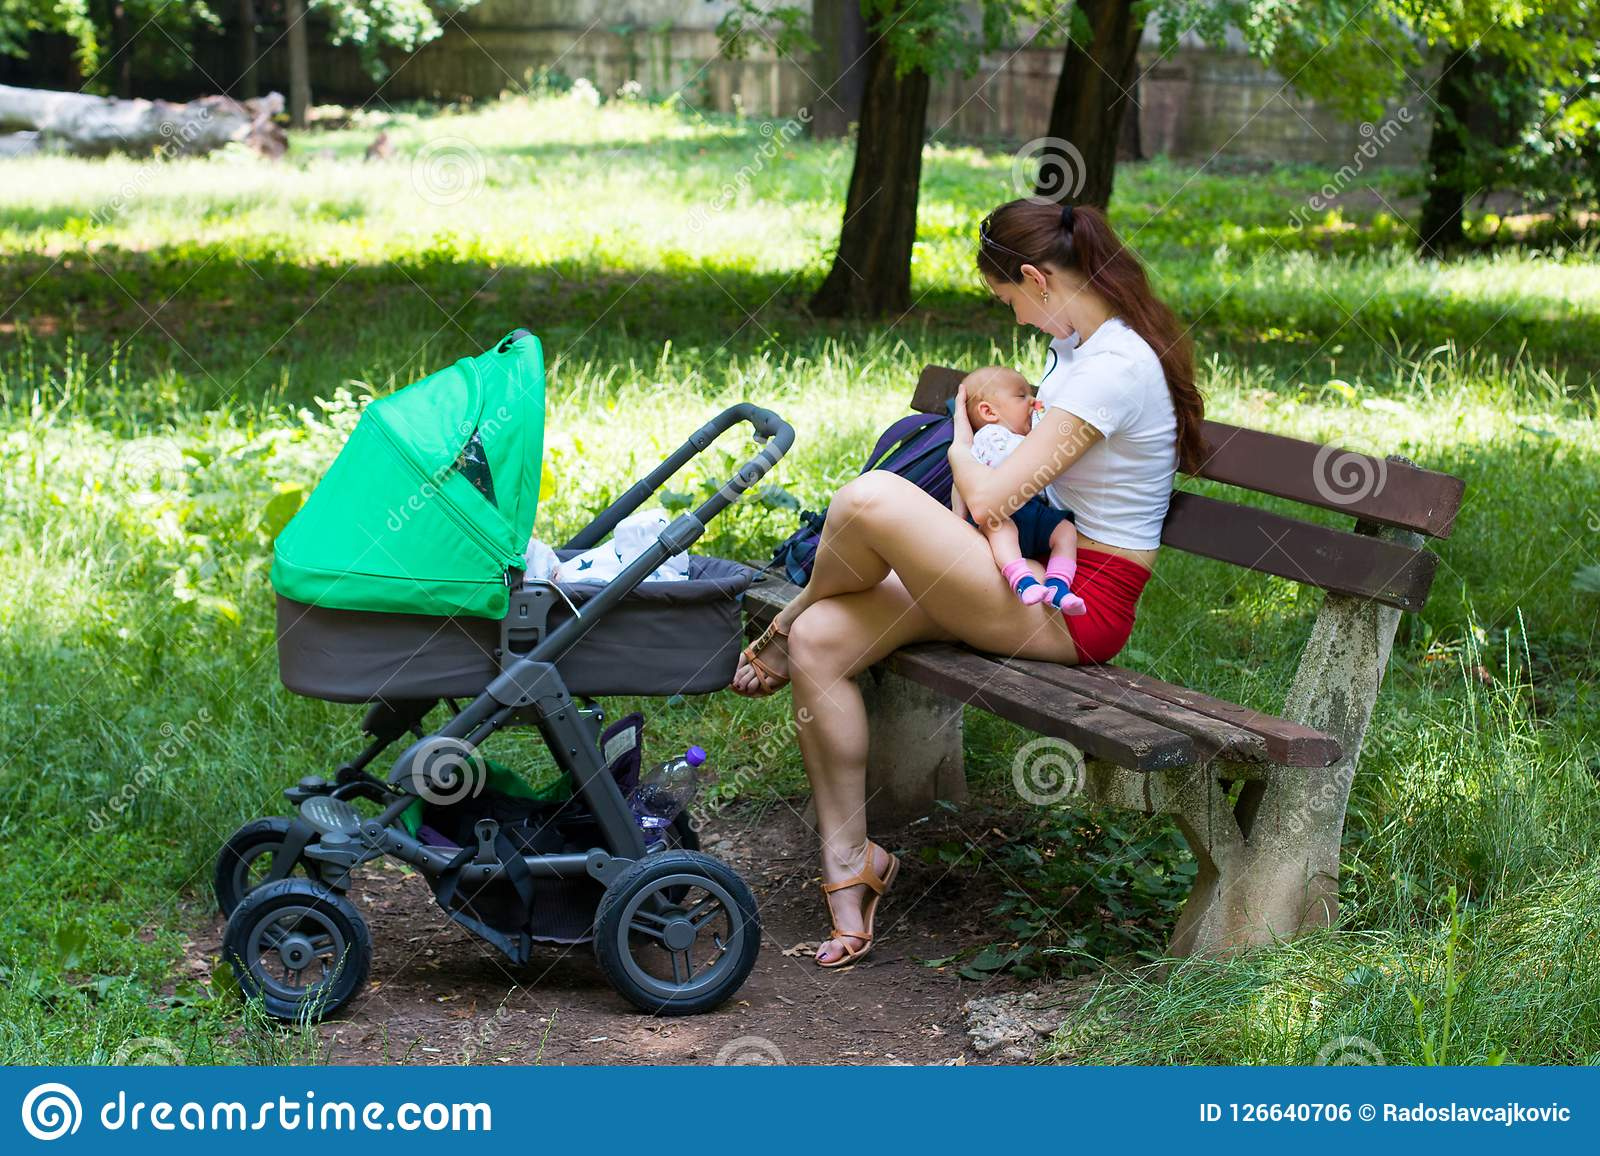 Young mother breast-feeding her cute baby, holding infant gently in hands and sitting on the park bench, next green stroller